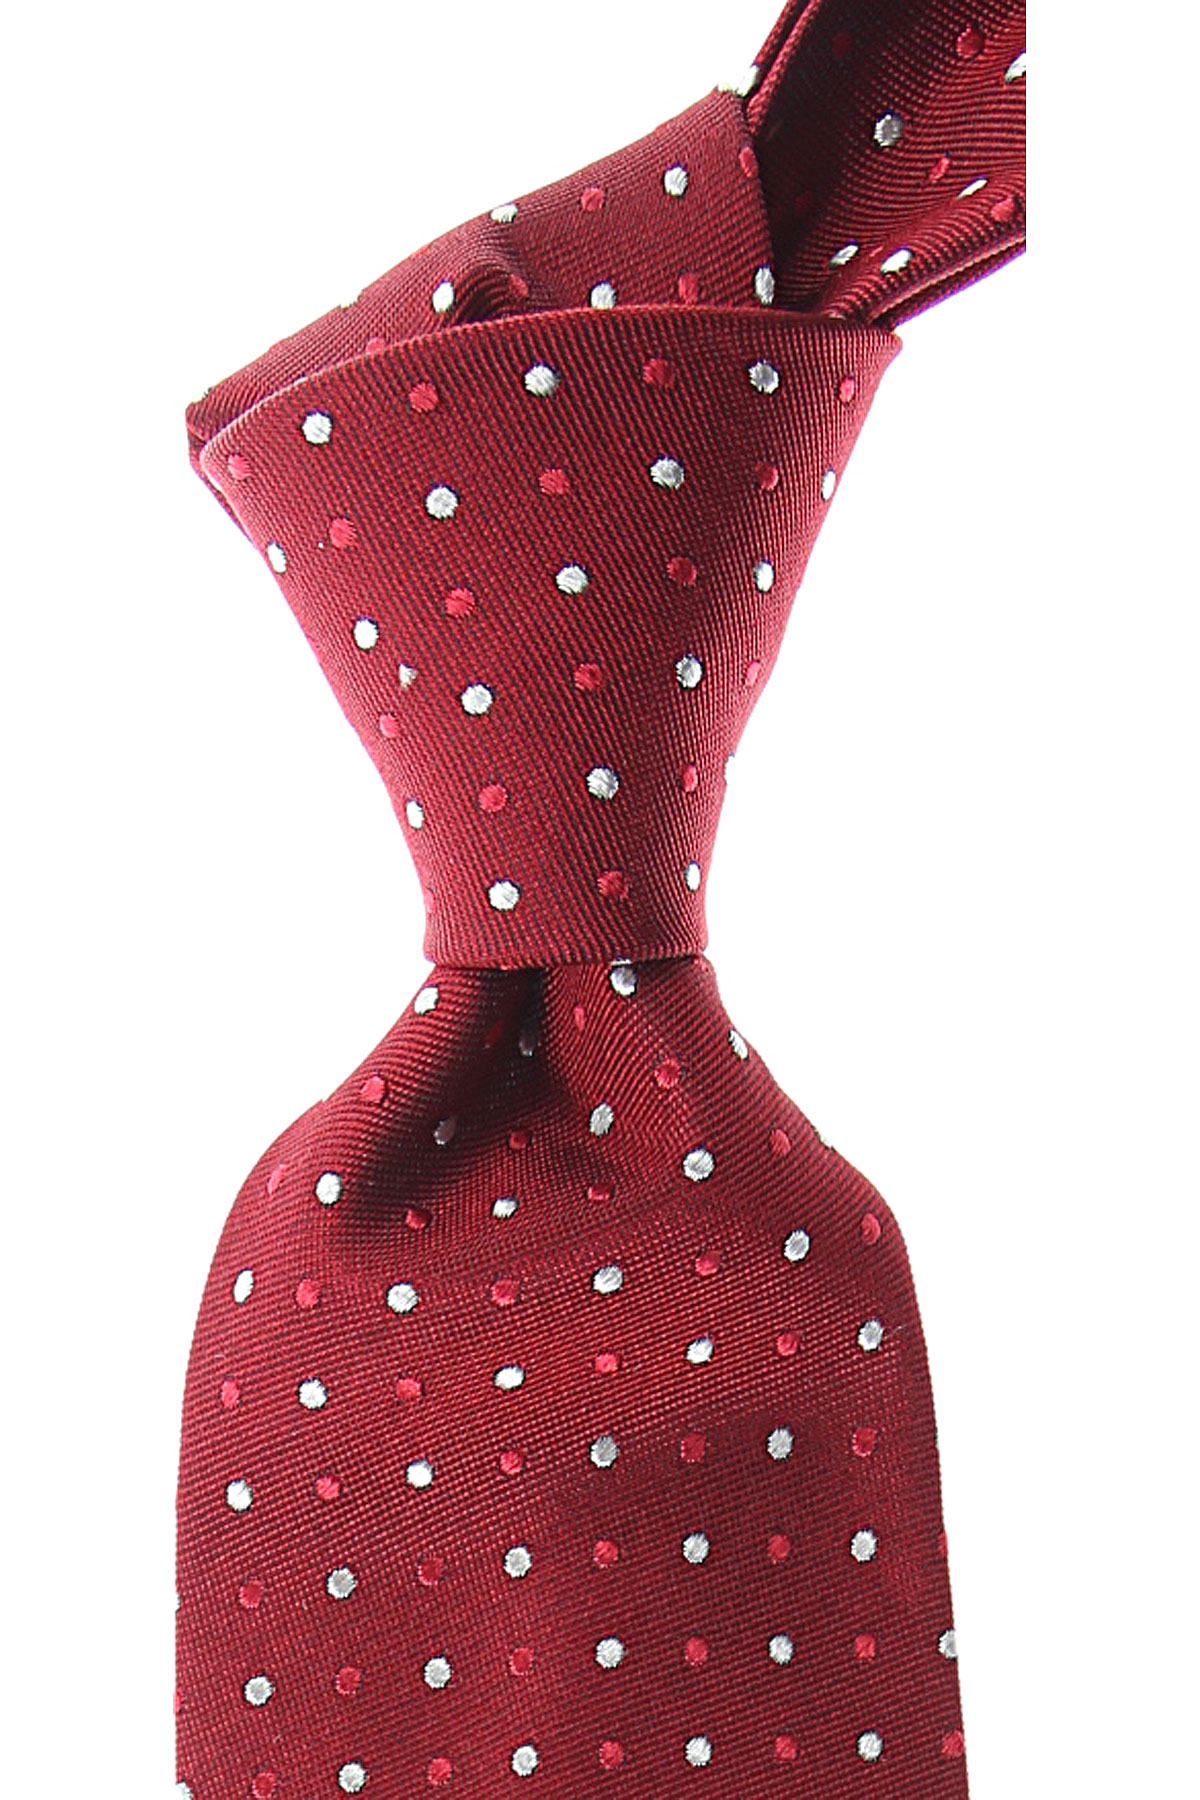 S.T. Dupont Ties On Sale, Cardinal Red, Silk, 2019